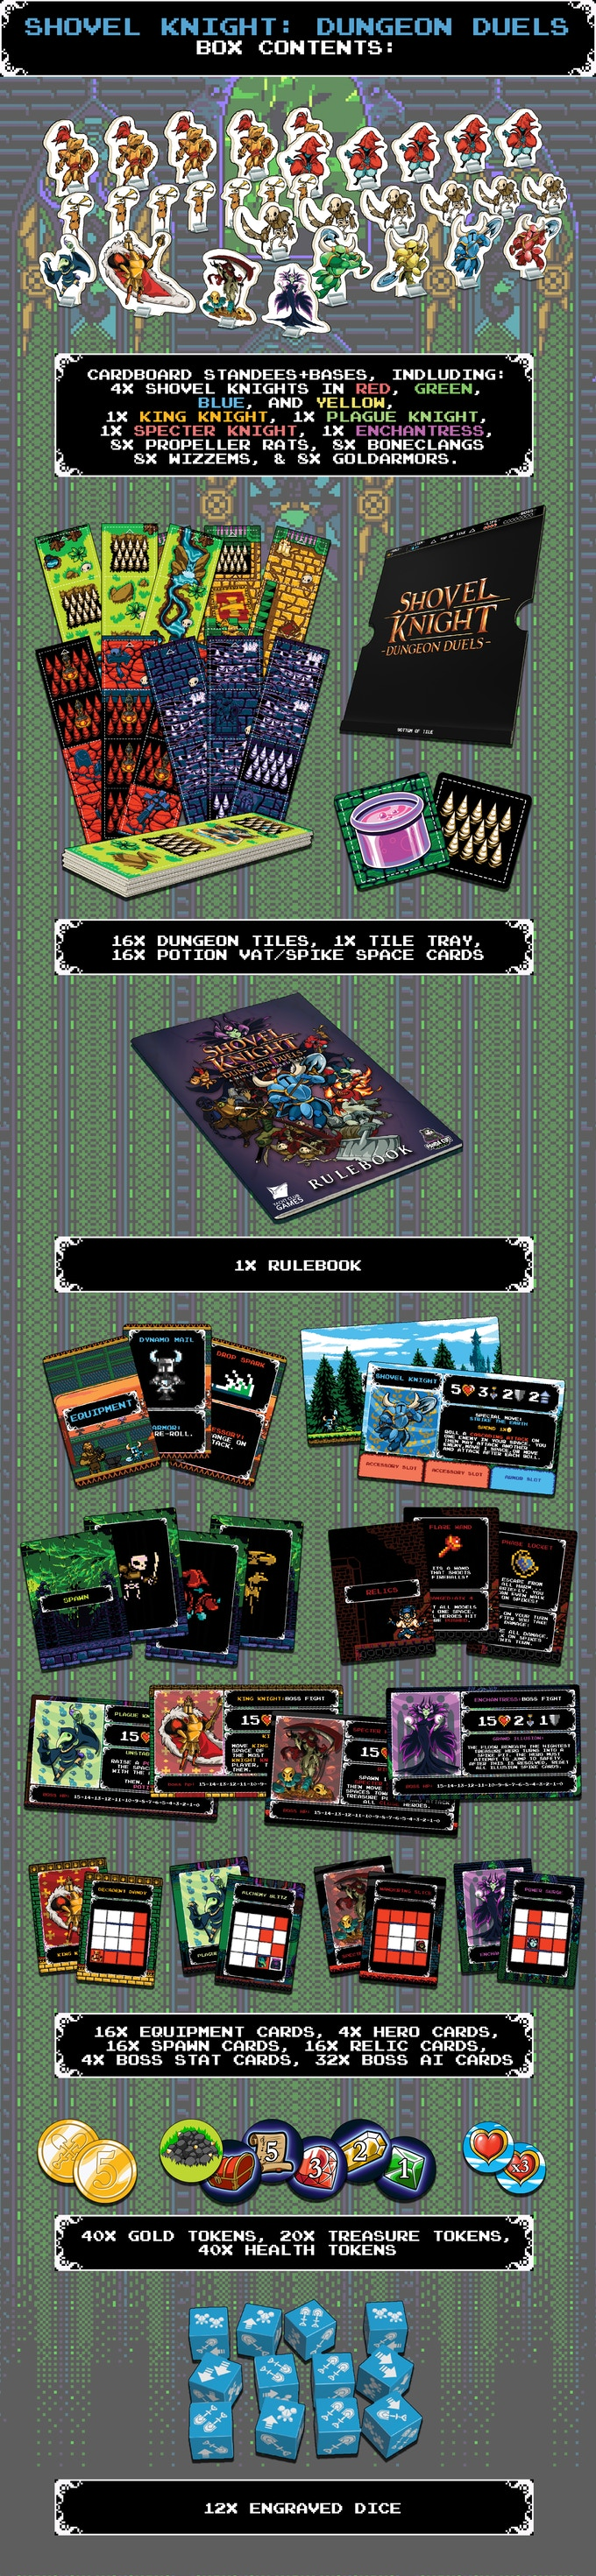 Shovel Knight Dungeon Duels Pledge #1